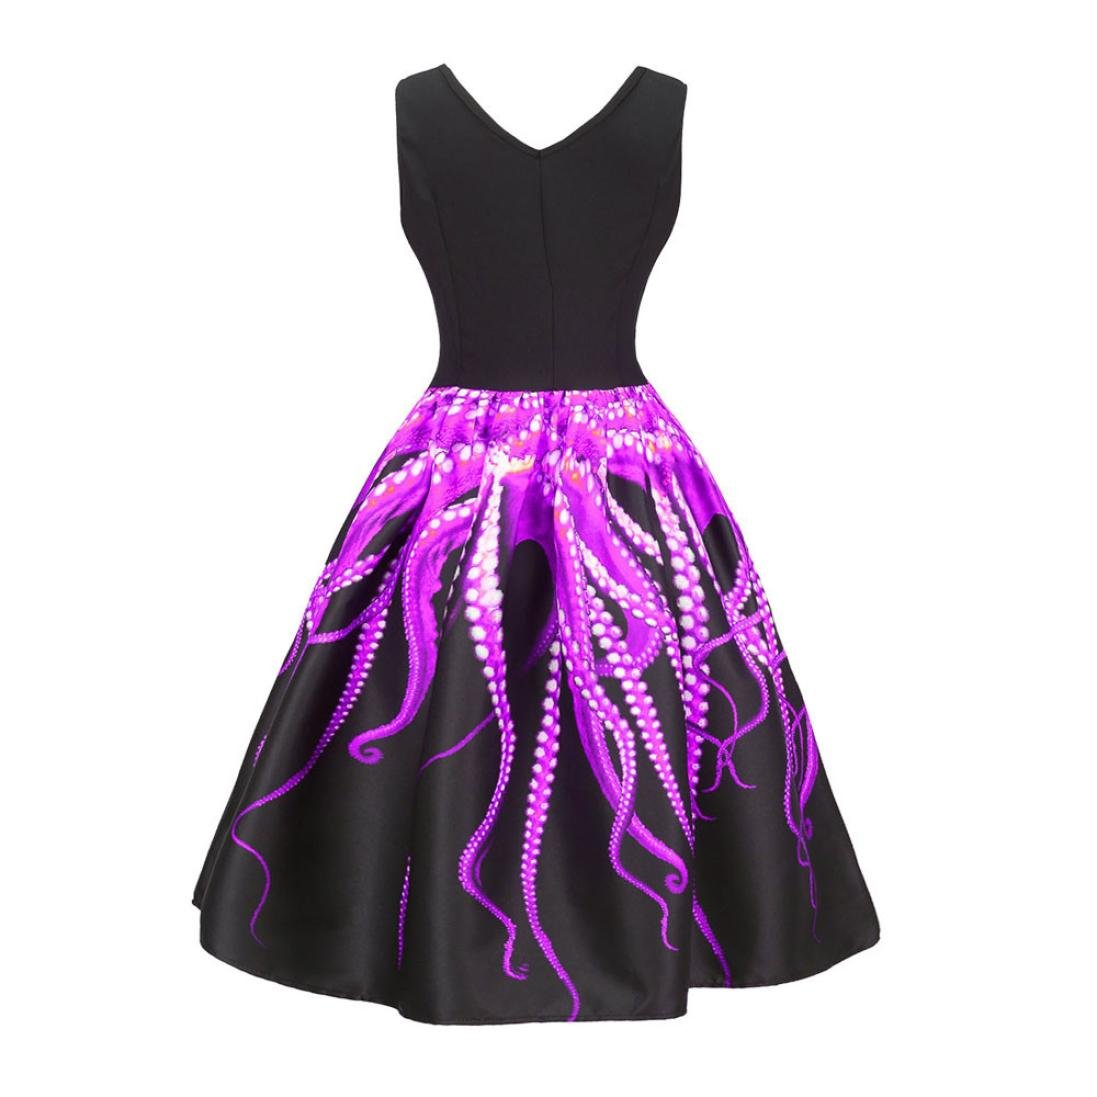 Pervobs Dress, Women Summer Sleeveless Vintage Printing Bodycon Casual Evening Party Prom Swing Pleated Dress (XXL, Purple)